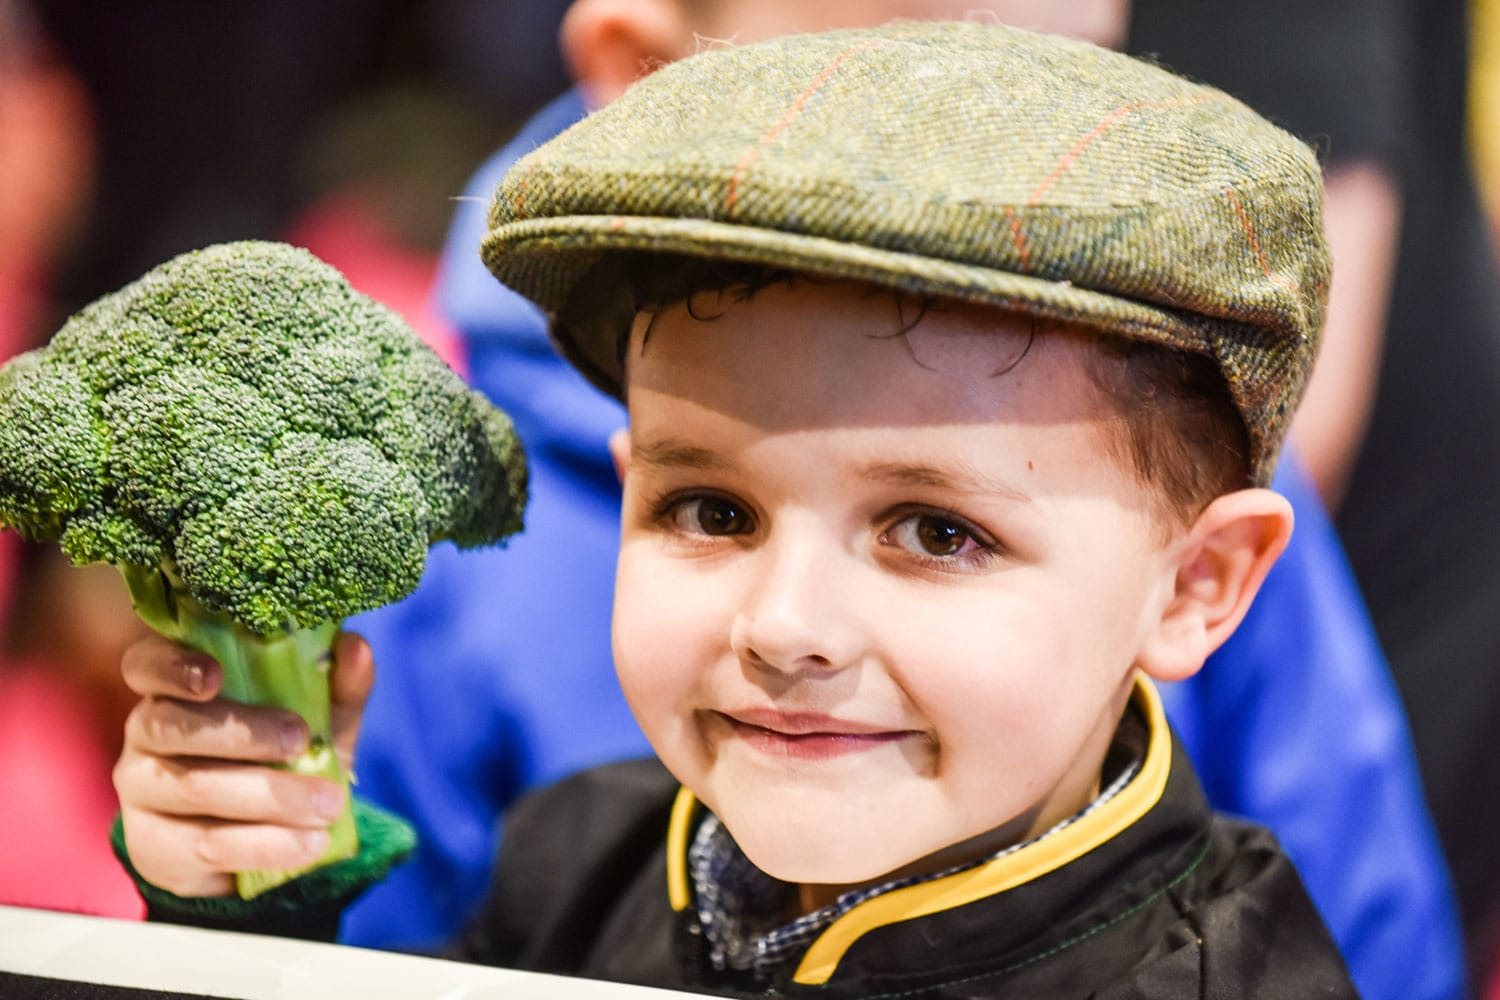 Little boy with broccoli at Springtime Live